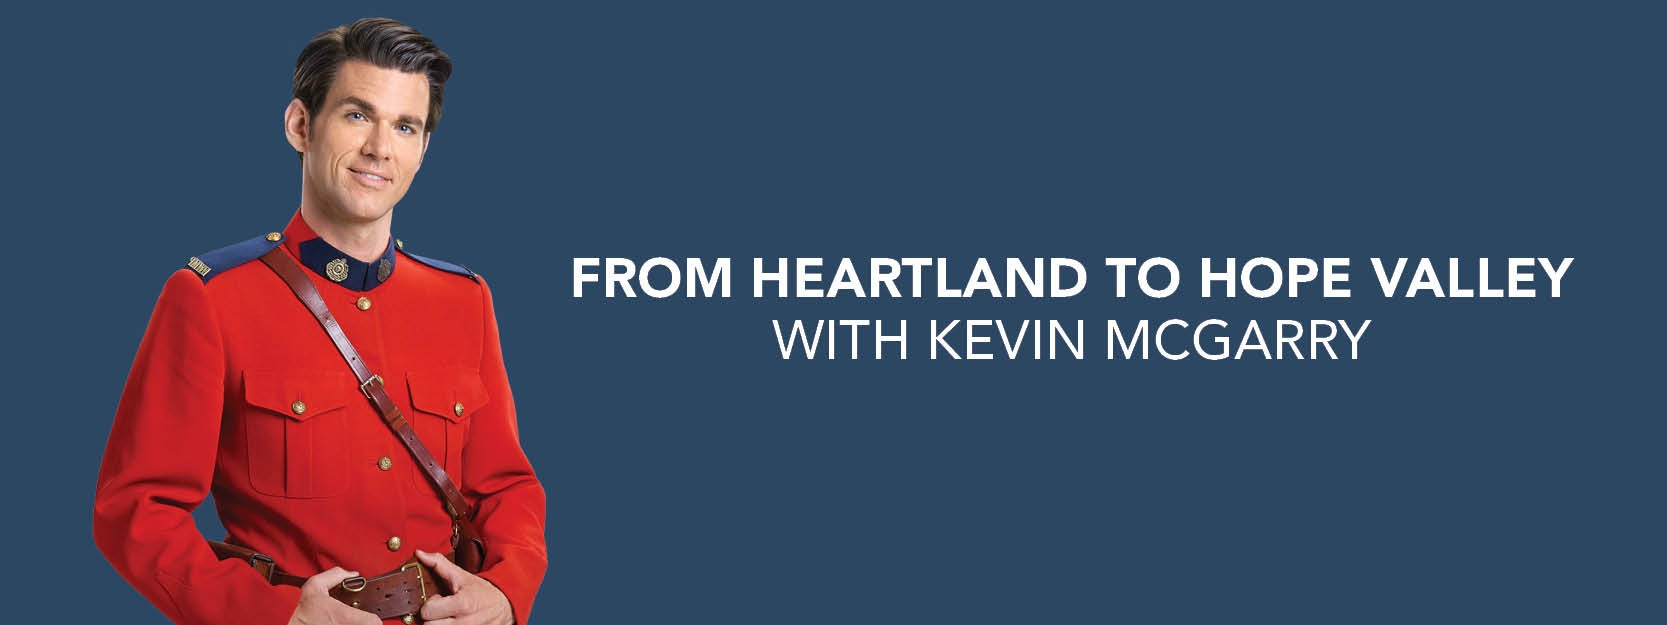 From Heartland to Hope Valley with Kevin McGarry